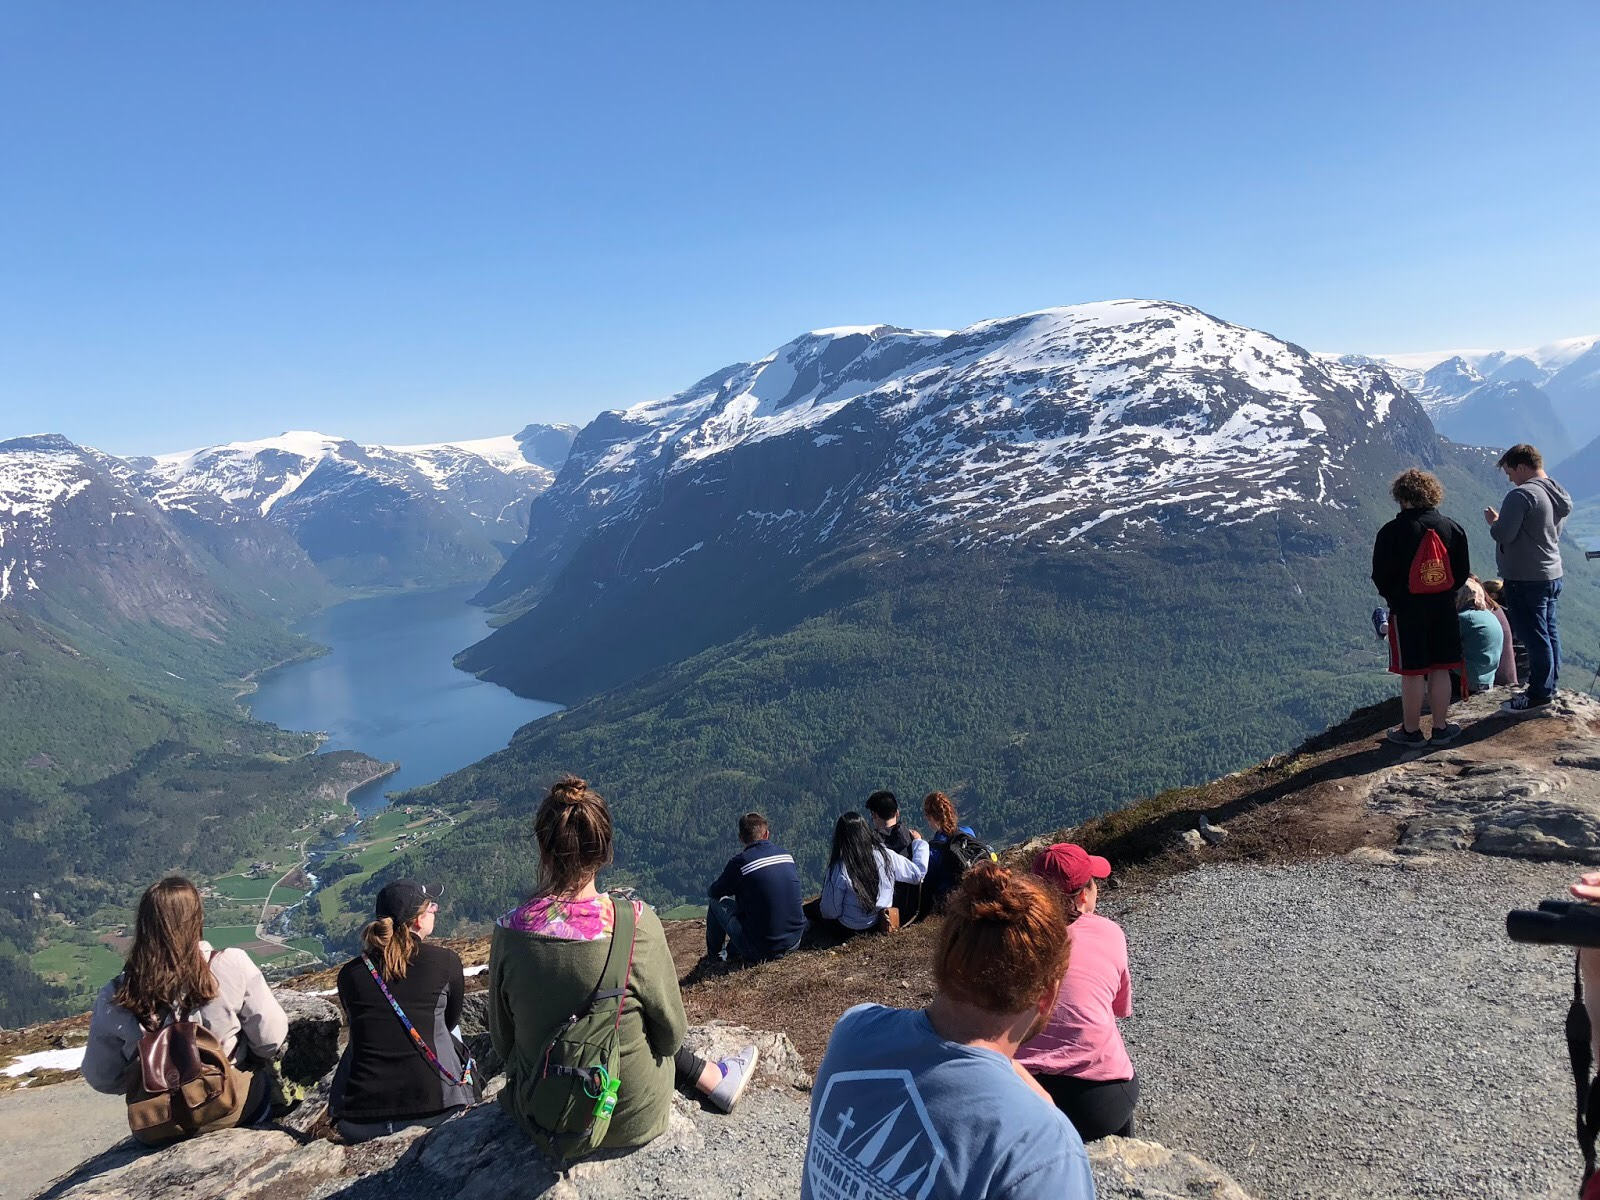 Students gathered on a mountaintop